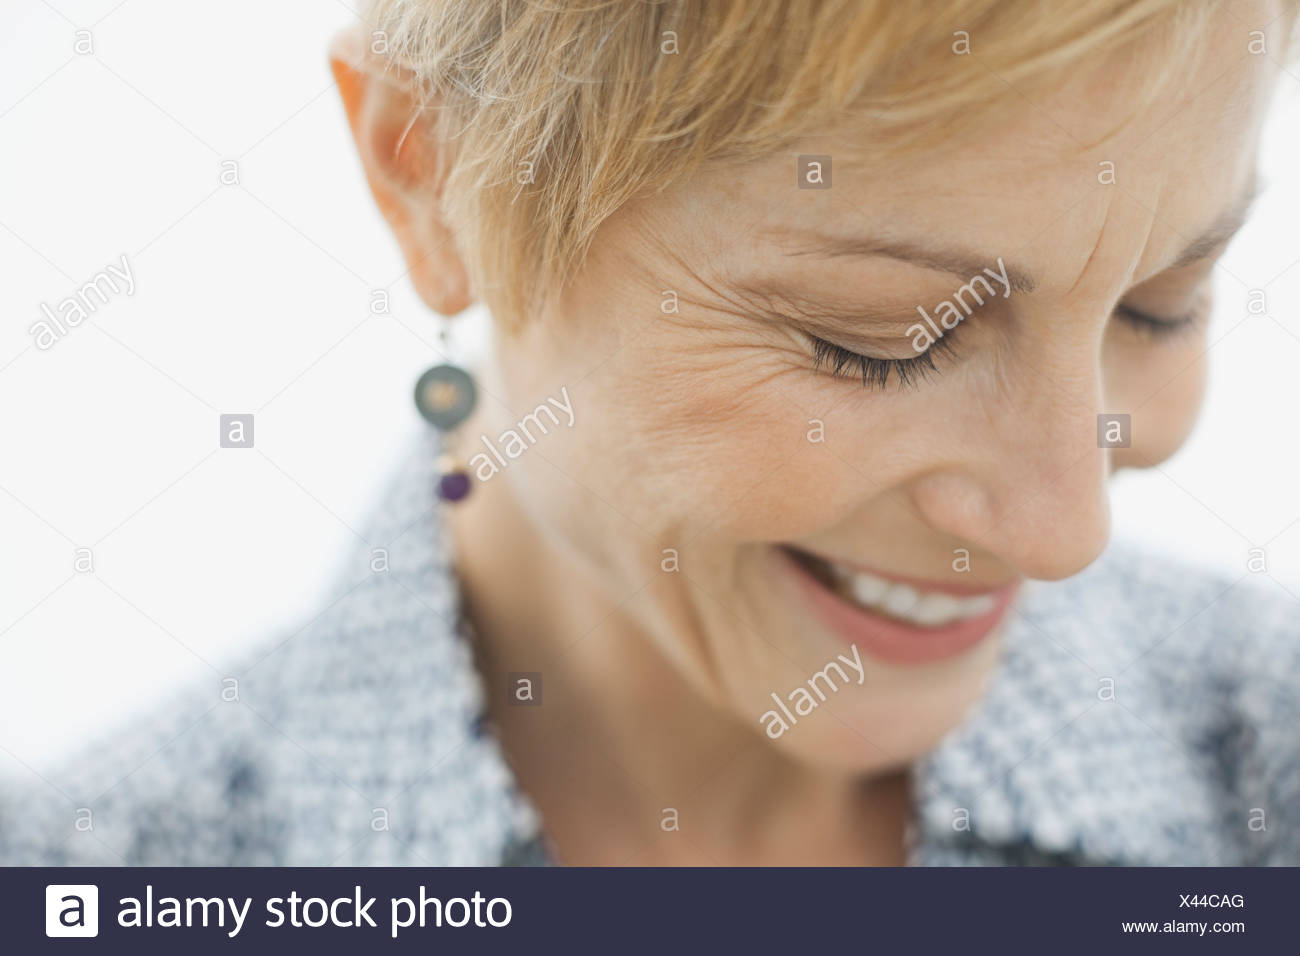 Close-up of smiling woman - Stock Image